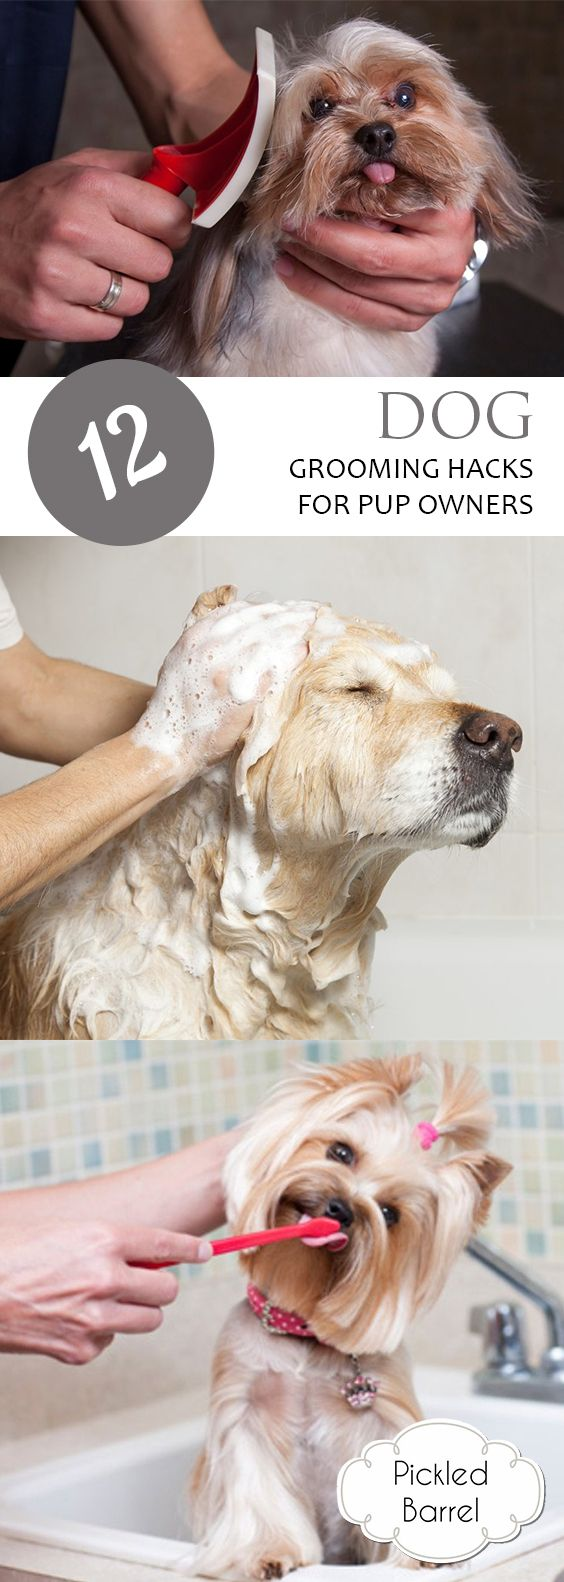 dog grooming Dog grooming salons are among the most popular pet service businesses learn how to start a grooming business and how to make it successful.